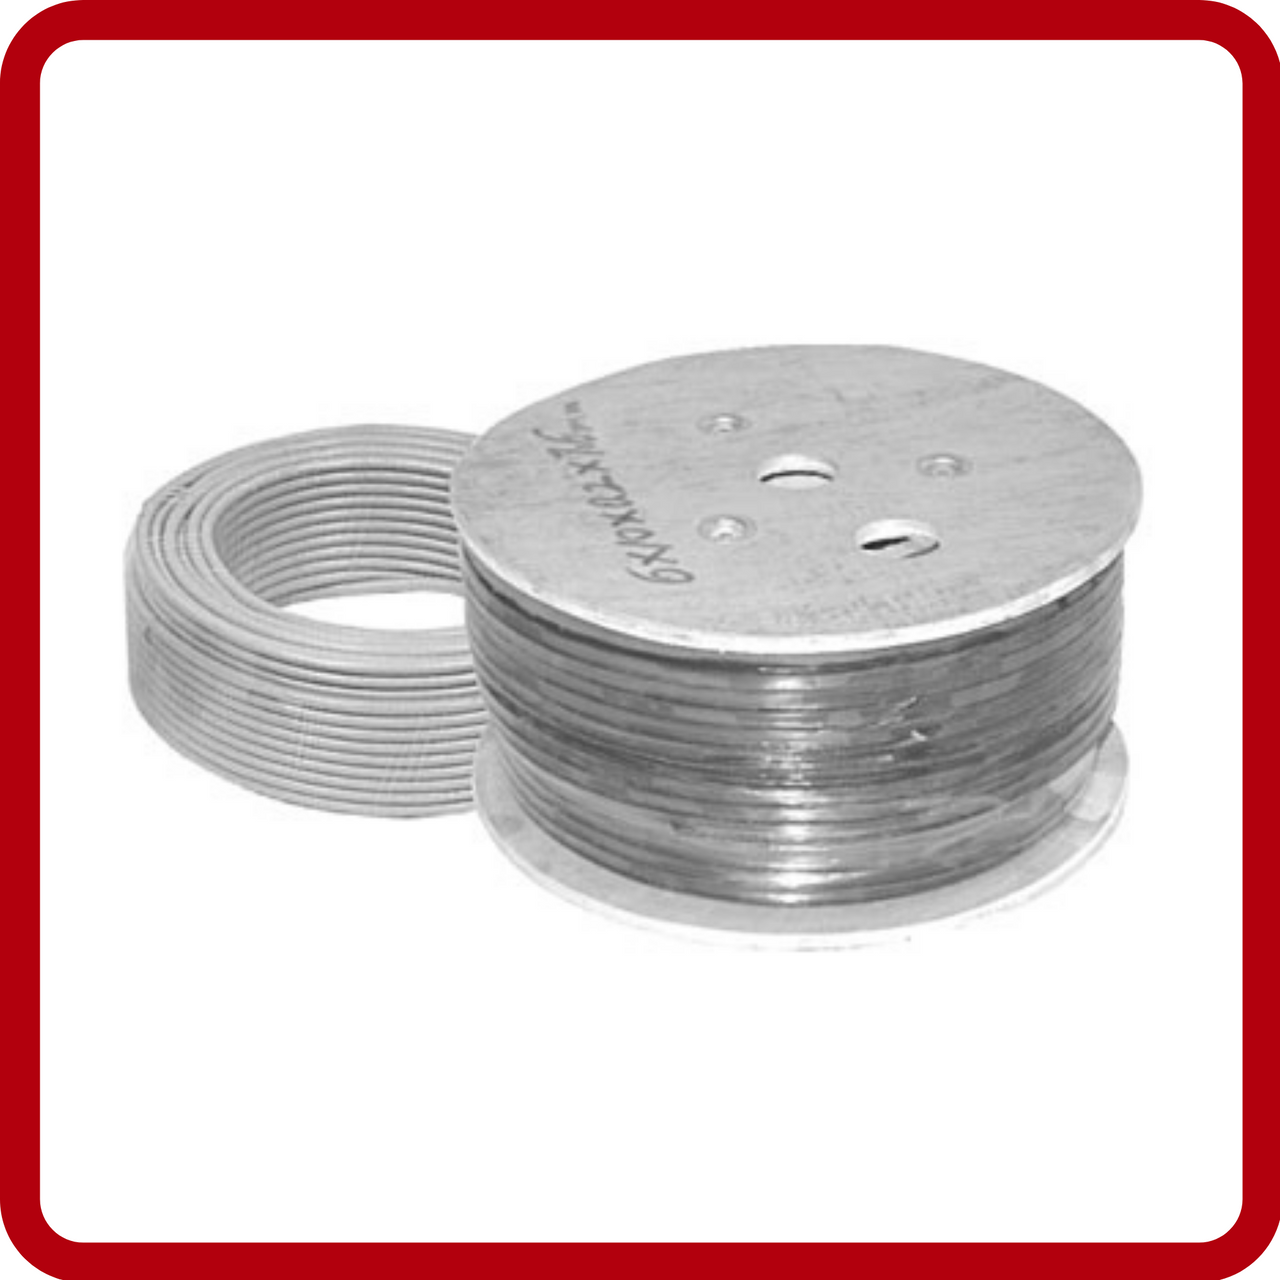 Anyload Load Cell Cables